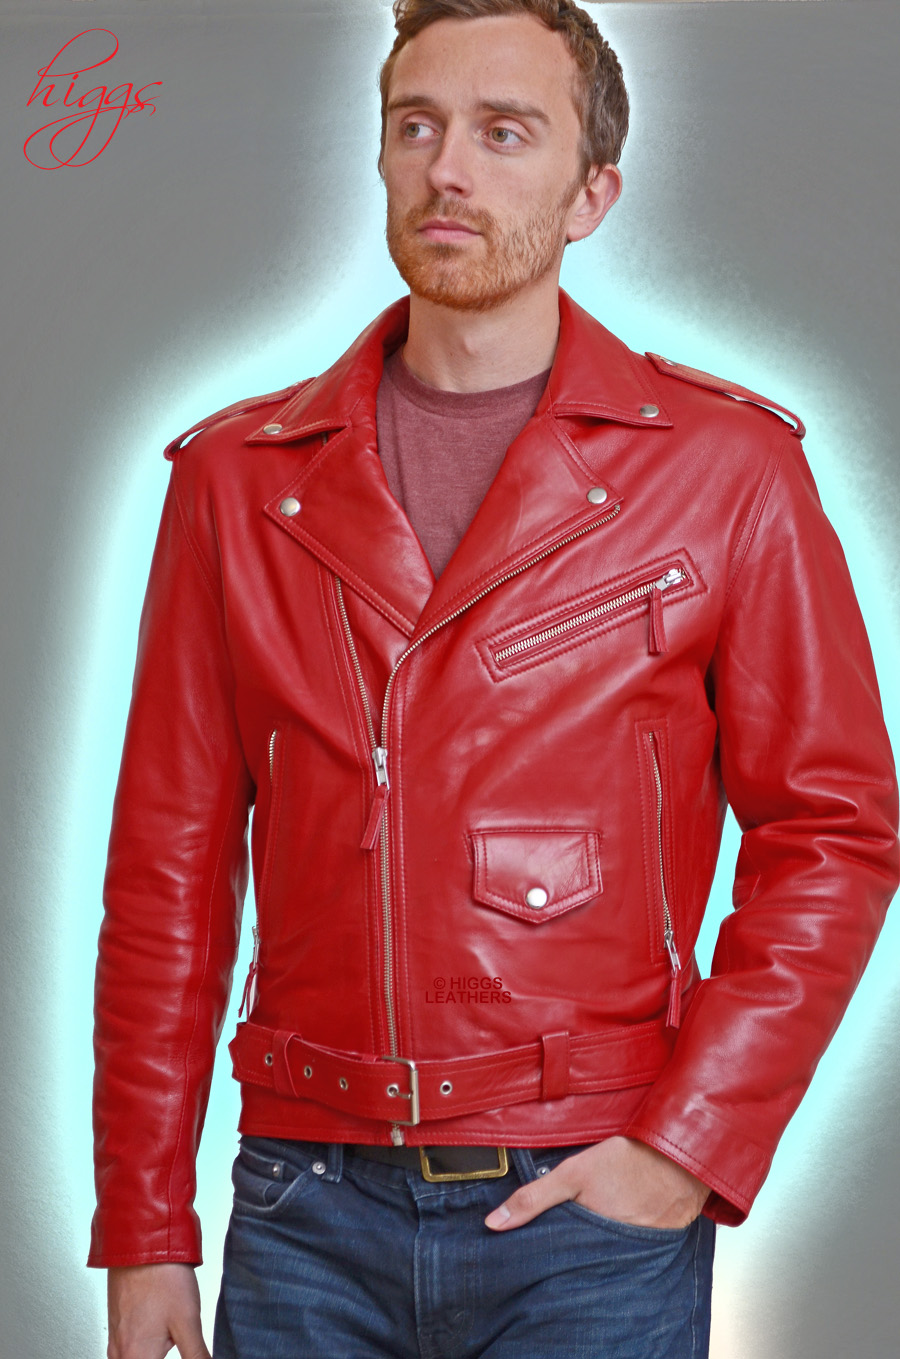 higgs leathers